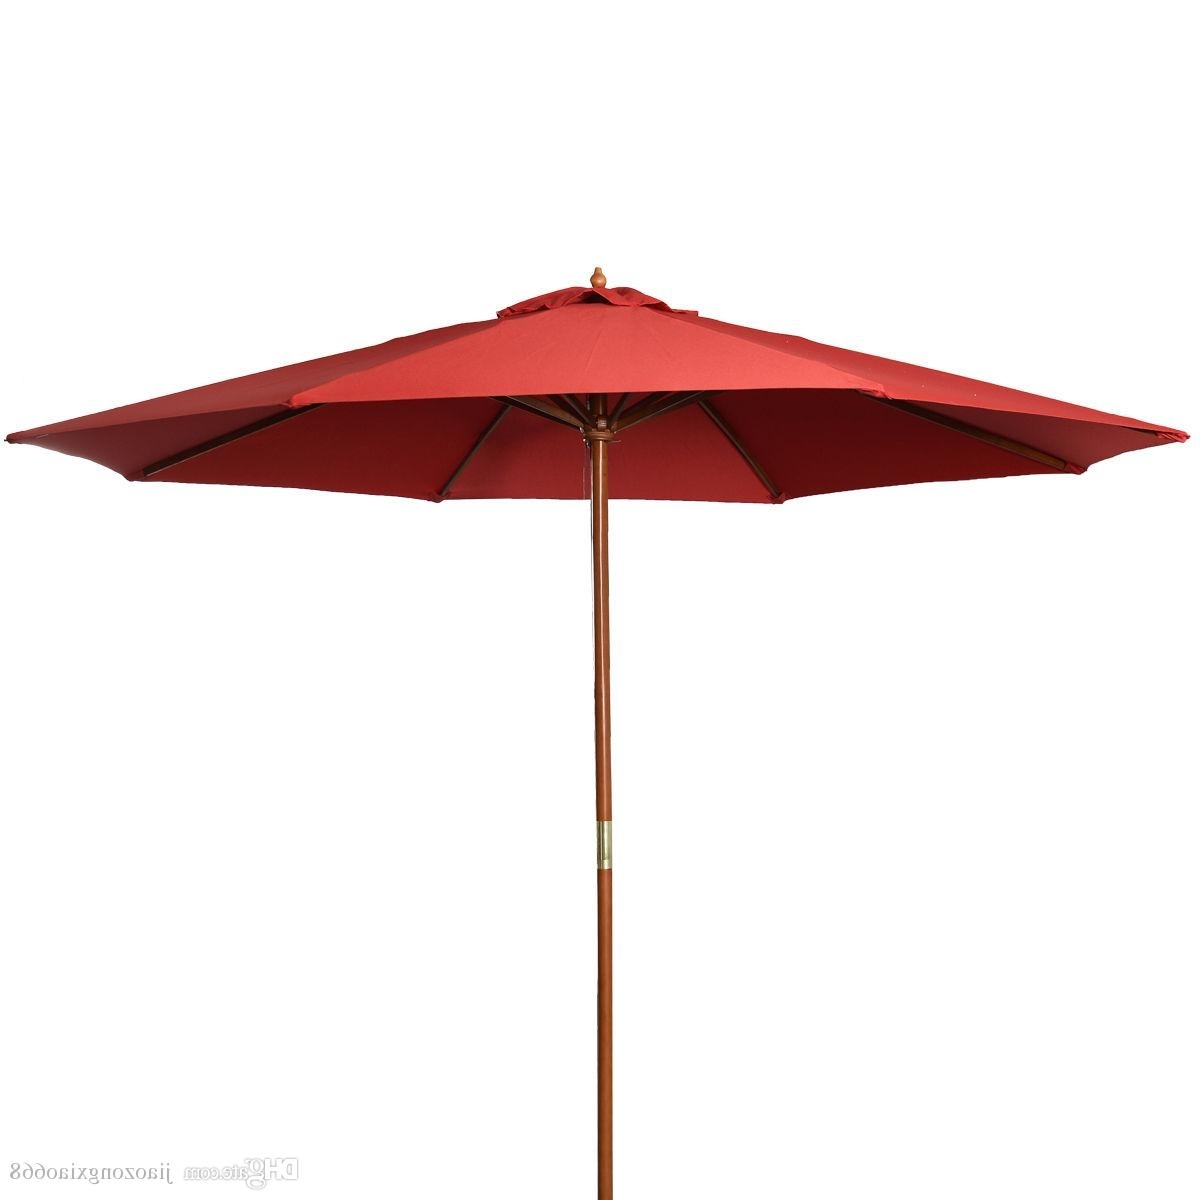 2018 9Ft Wooden Patio Umbrella Sun Shade Wood Pole Outdoor Beach In Current Red Patio Umbrellas (View 6 of 20)